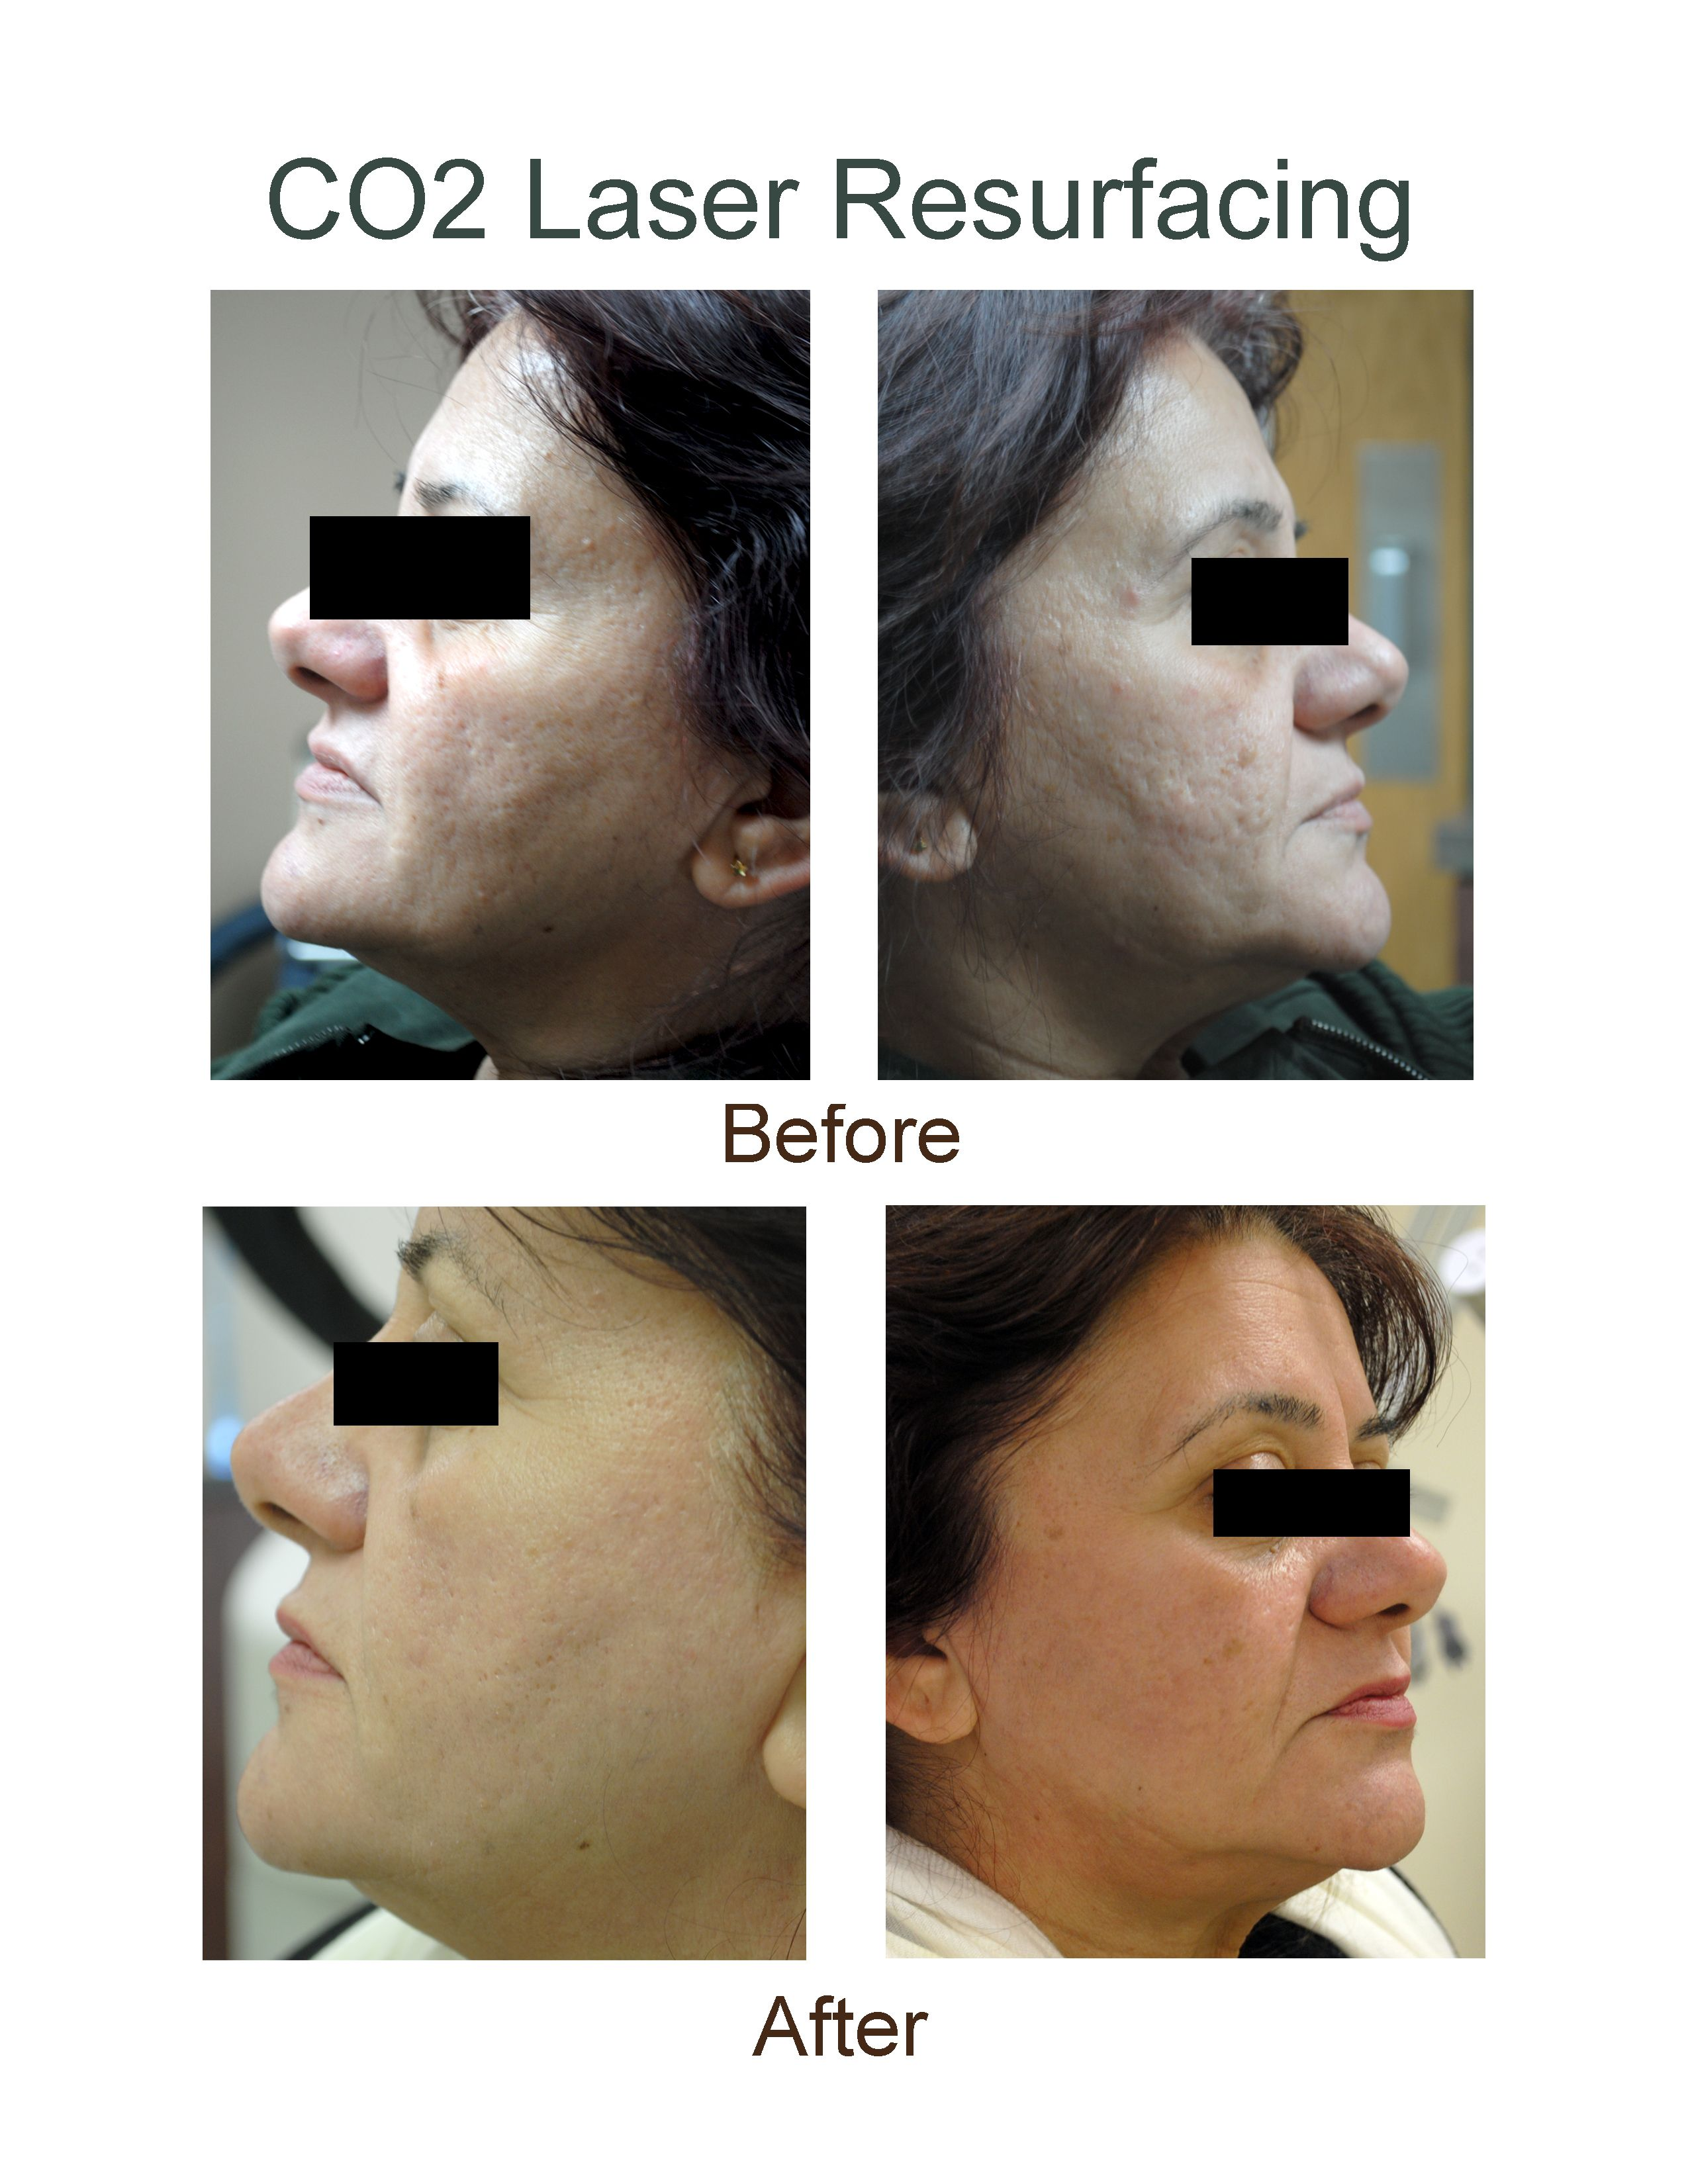 Before and After CO2 Laser Resurfacing at AH Laser